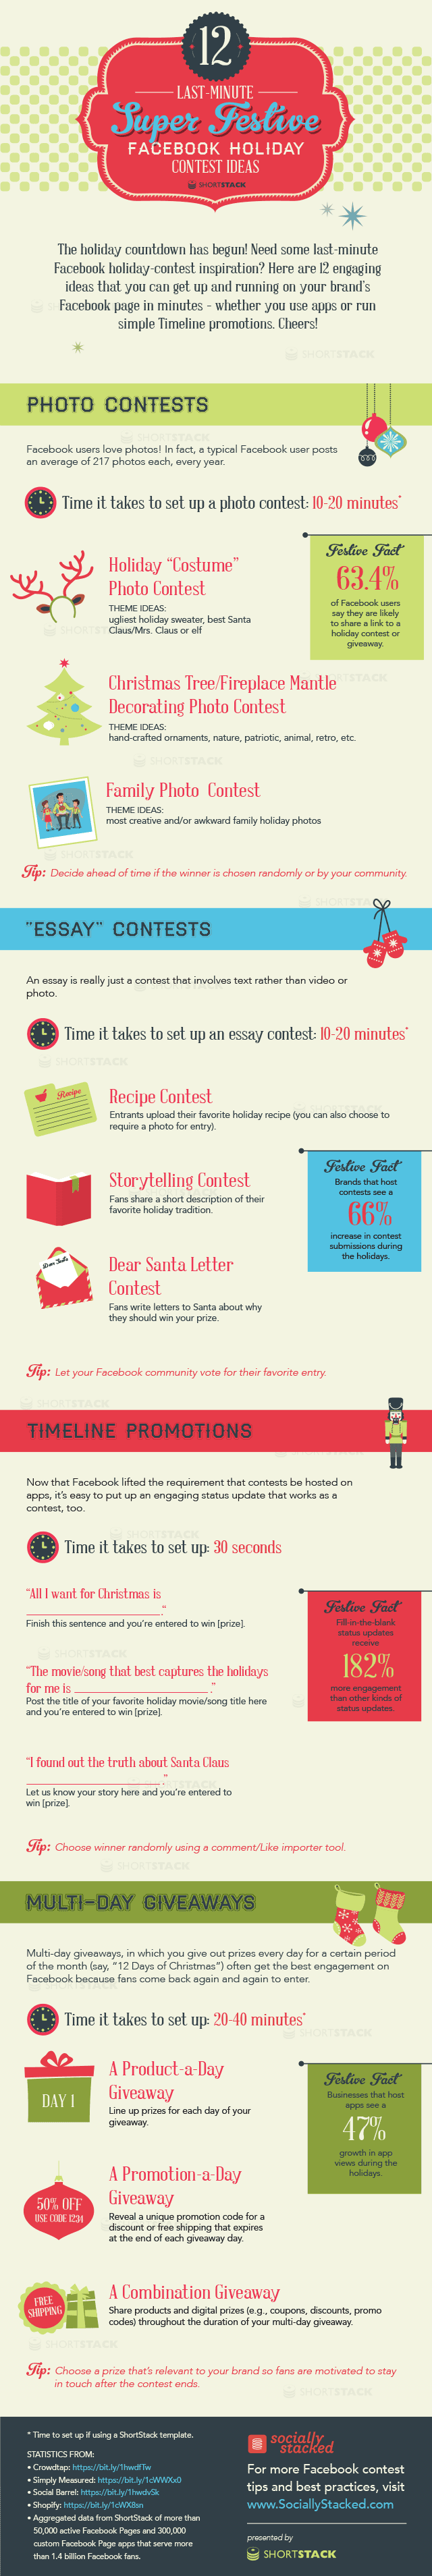 12 Facebook Contest Ideas for the Holidays [infographic]